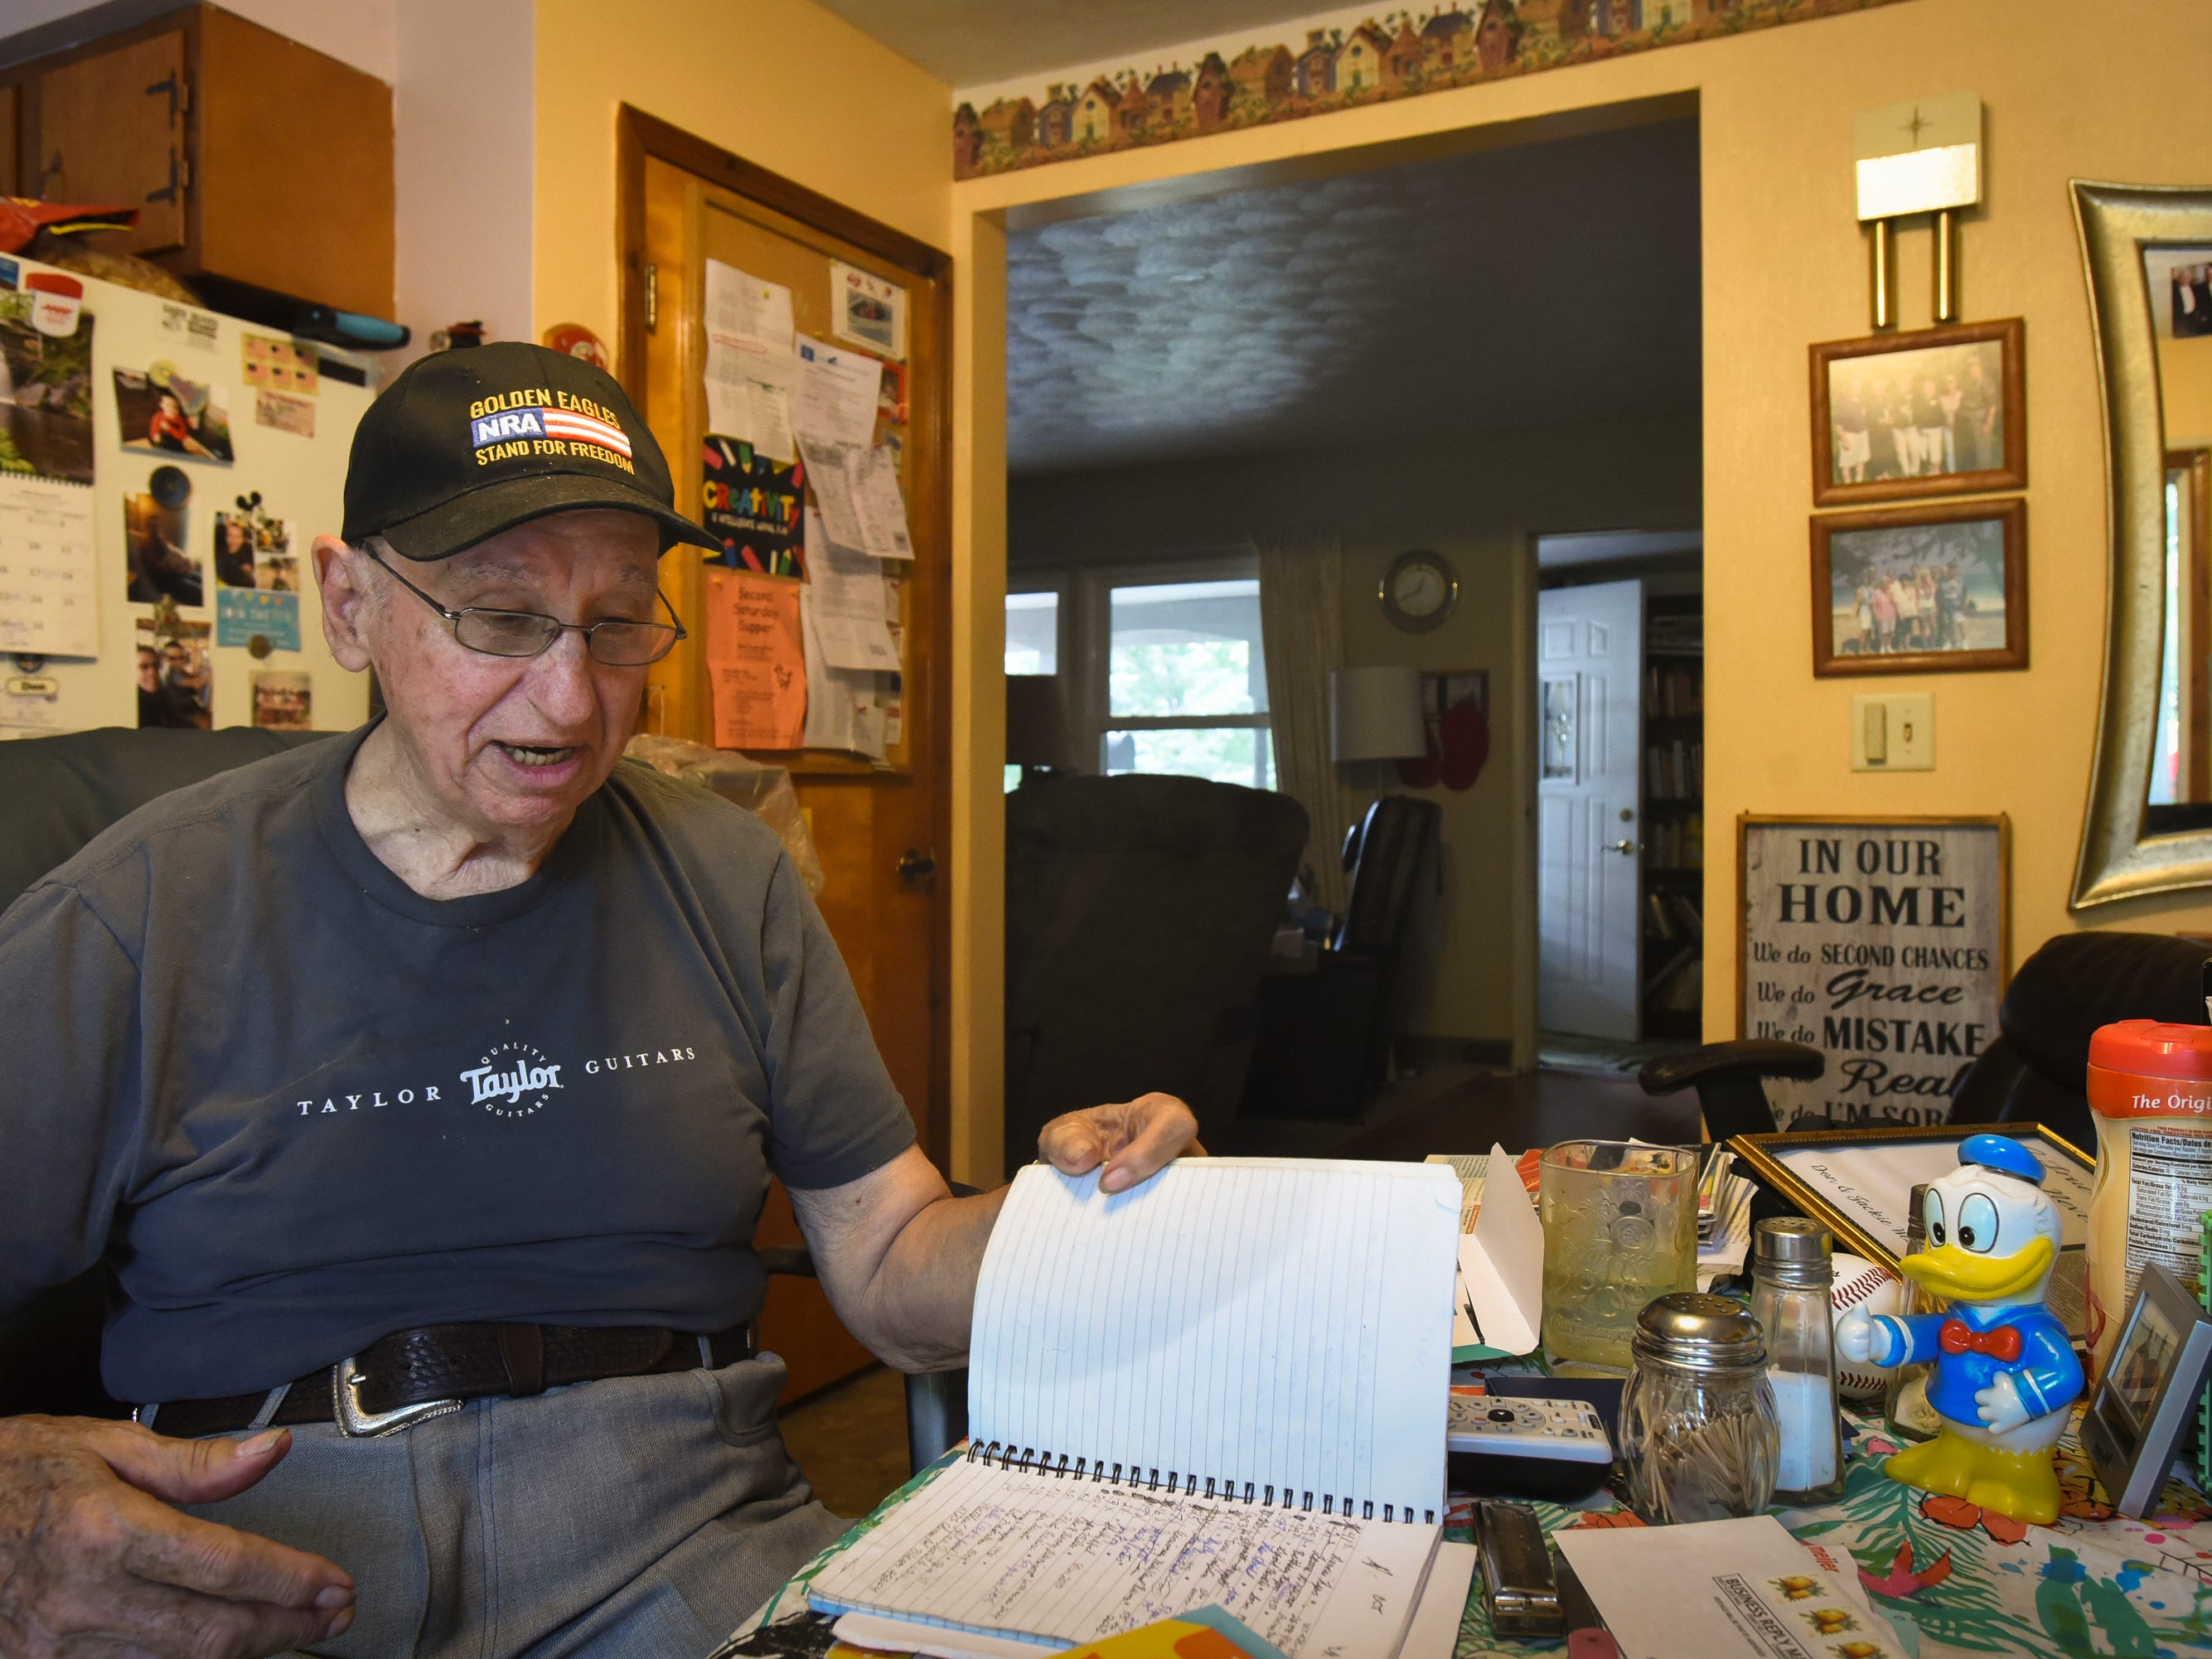 """How do I keep going you ask? I work in the yard every day, I feed the chickens, I collect eggs.  I've taken over Jackie's task of sending cards and letters to friends and family, that's what she used to do,"" Don West, 90, of Eaton Rapids said Wednesday, Aug. 29, 2018, about dealing with the absence of his wife Jackie, who has lived in a retirement home since her June 2017 stroke.  ""I visit every day - I haven't missed one day,"" West says matter-of-factly.  ""I tell Jackie everything about my day, who it is I talked to, where I went - That's what she wants to know,"" he says."